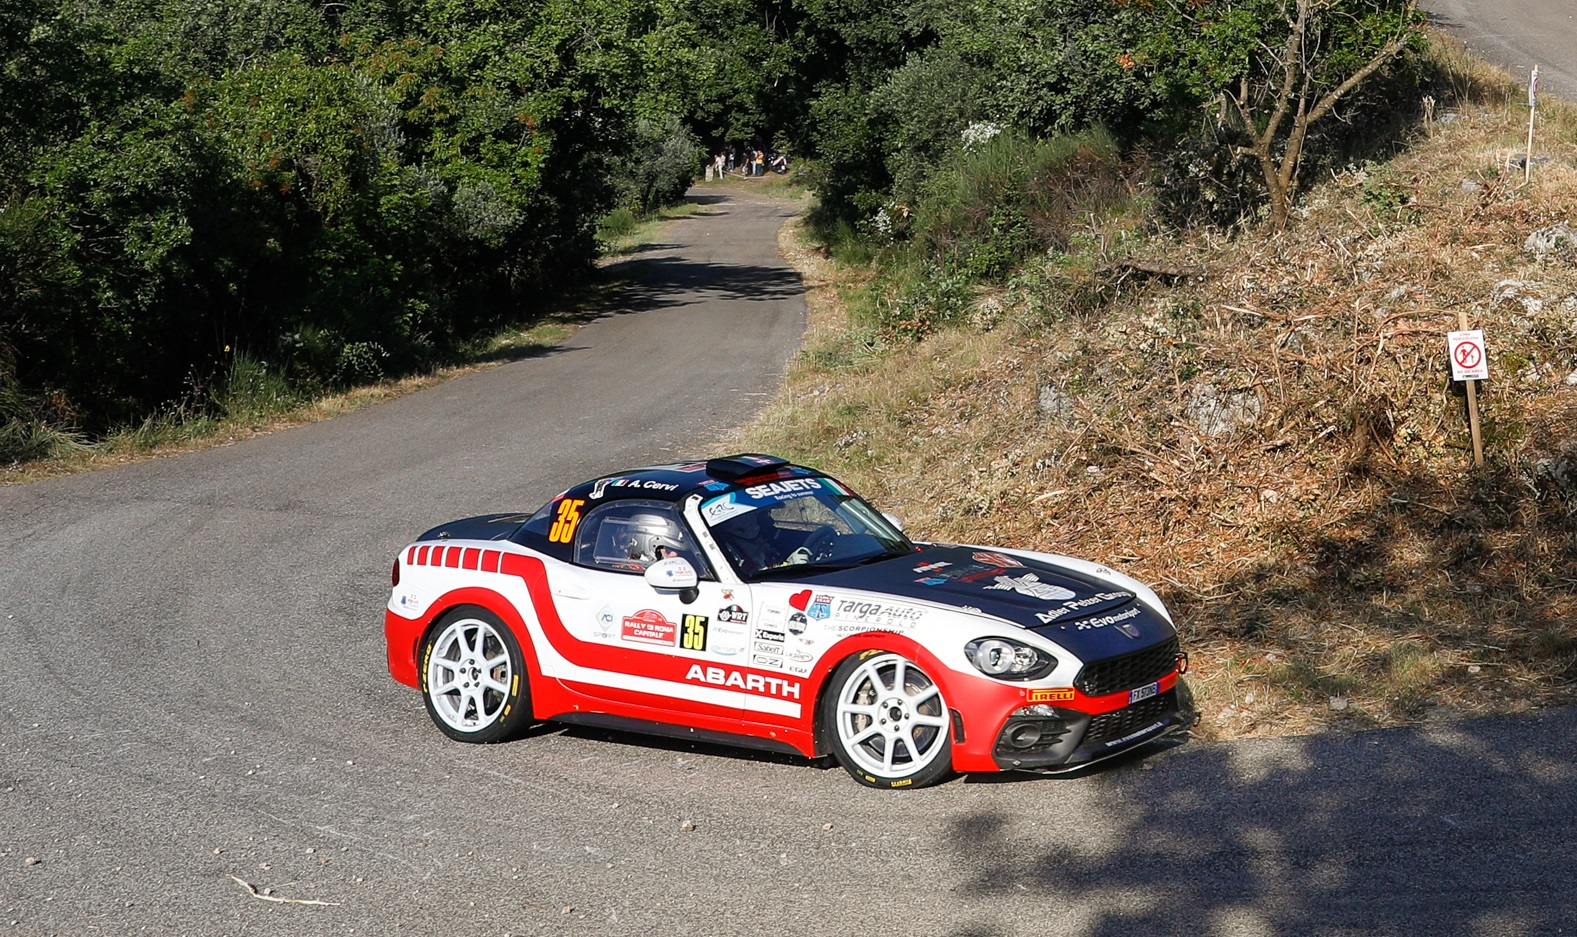 35 GOBBIN Roberto (ITA), CERVI Alessandro (ITA), Team Roberto Gobbin,  Abarth 124 Rally, action    during the 2020 Rally di Roma Capitale, 1st round of the 2020 FIA European Rally Championship, from July 24 to 26, 2020 in Rome, Italy - Photo Frédéric Le Floc'h / DPPI